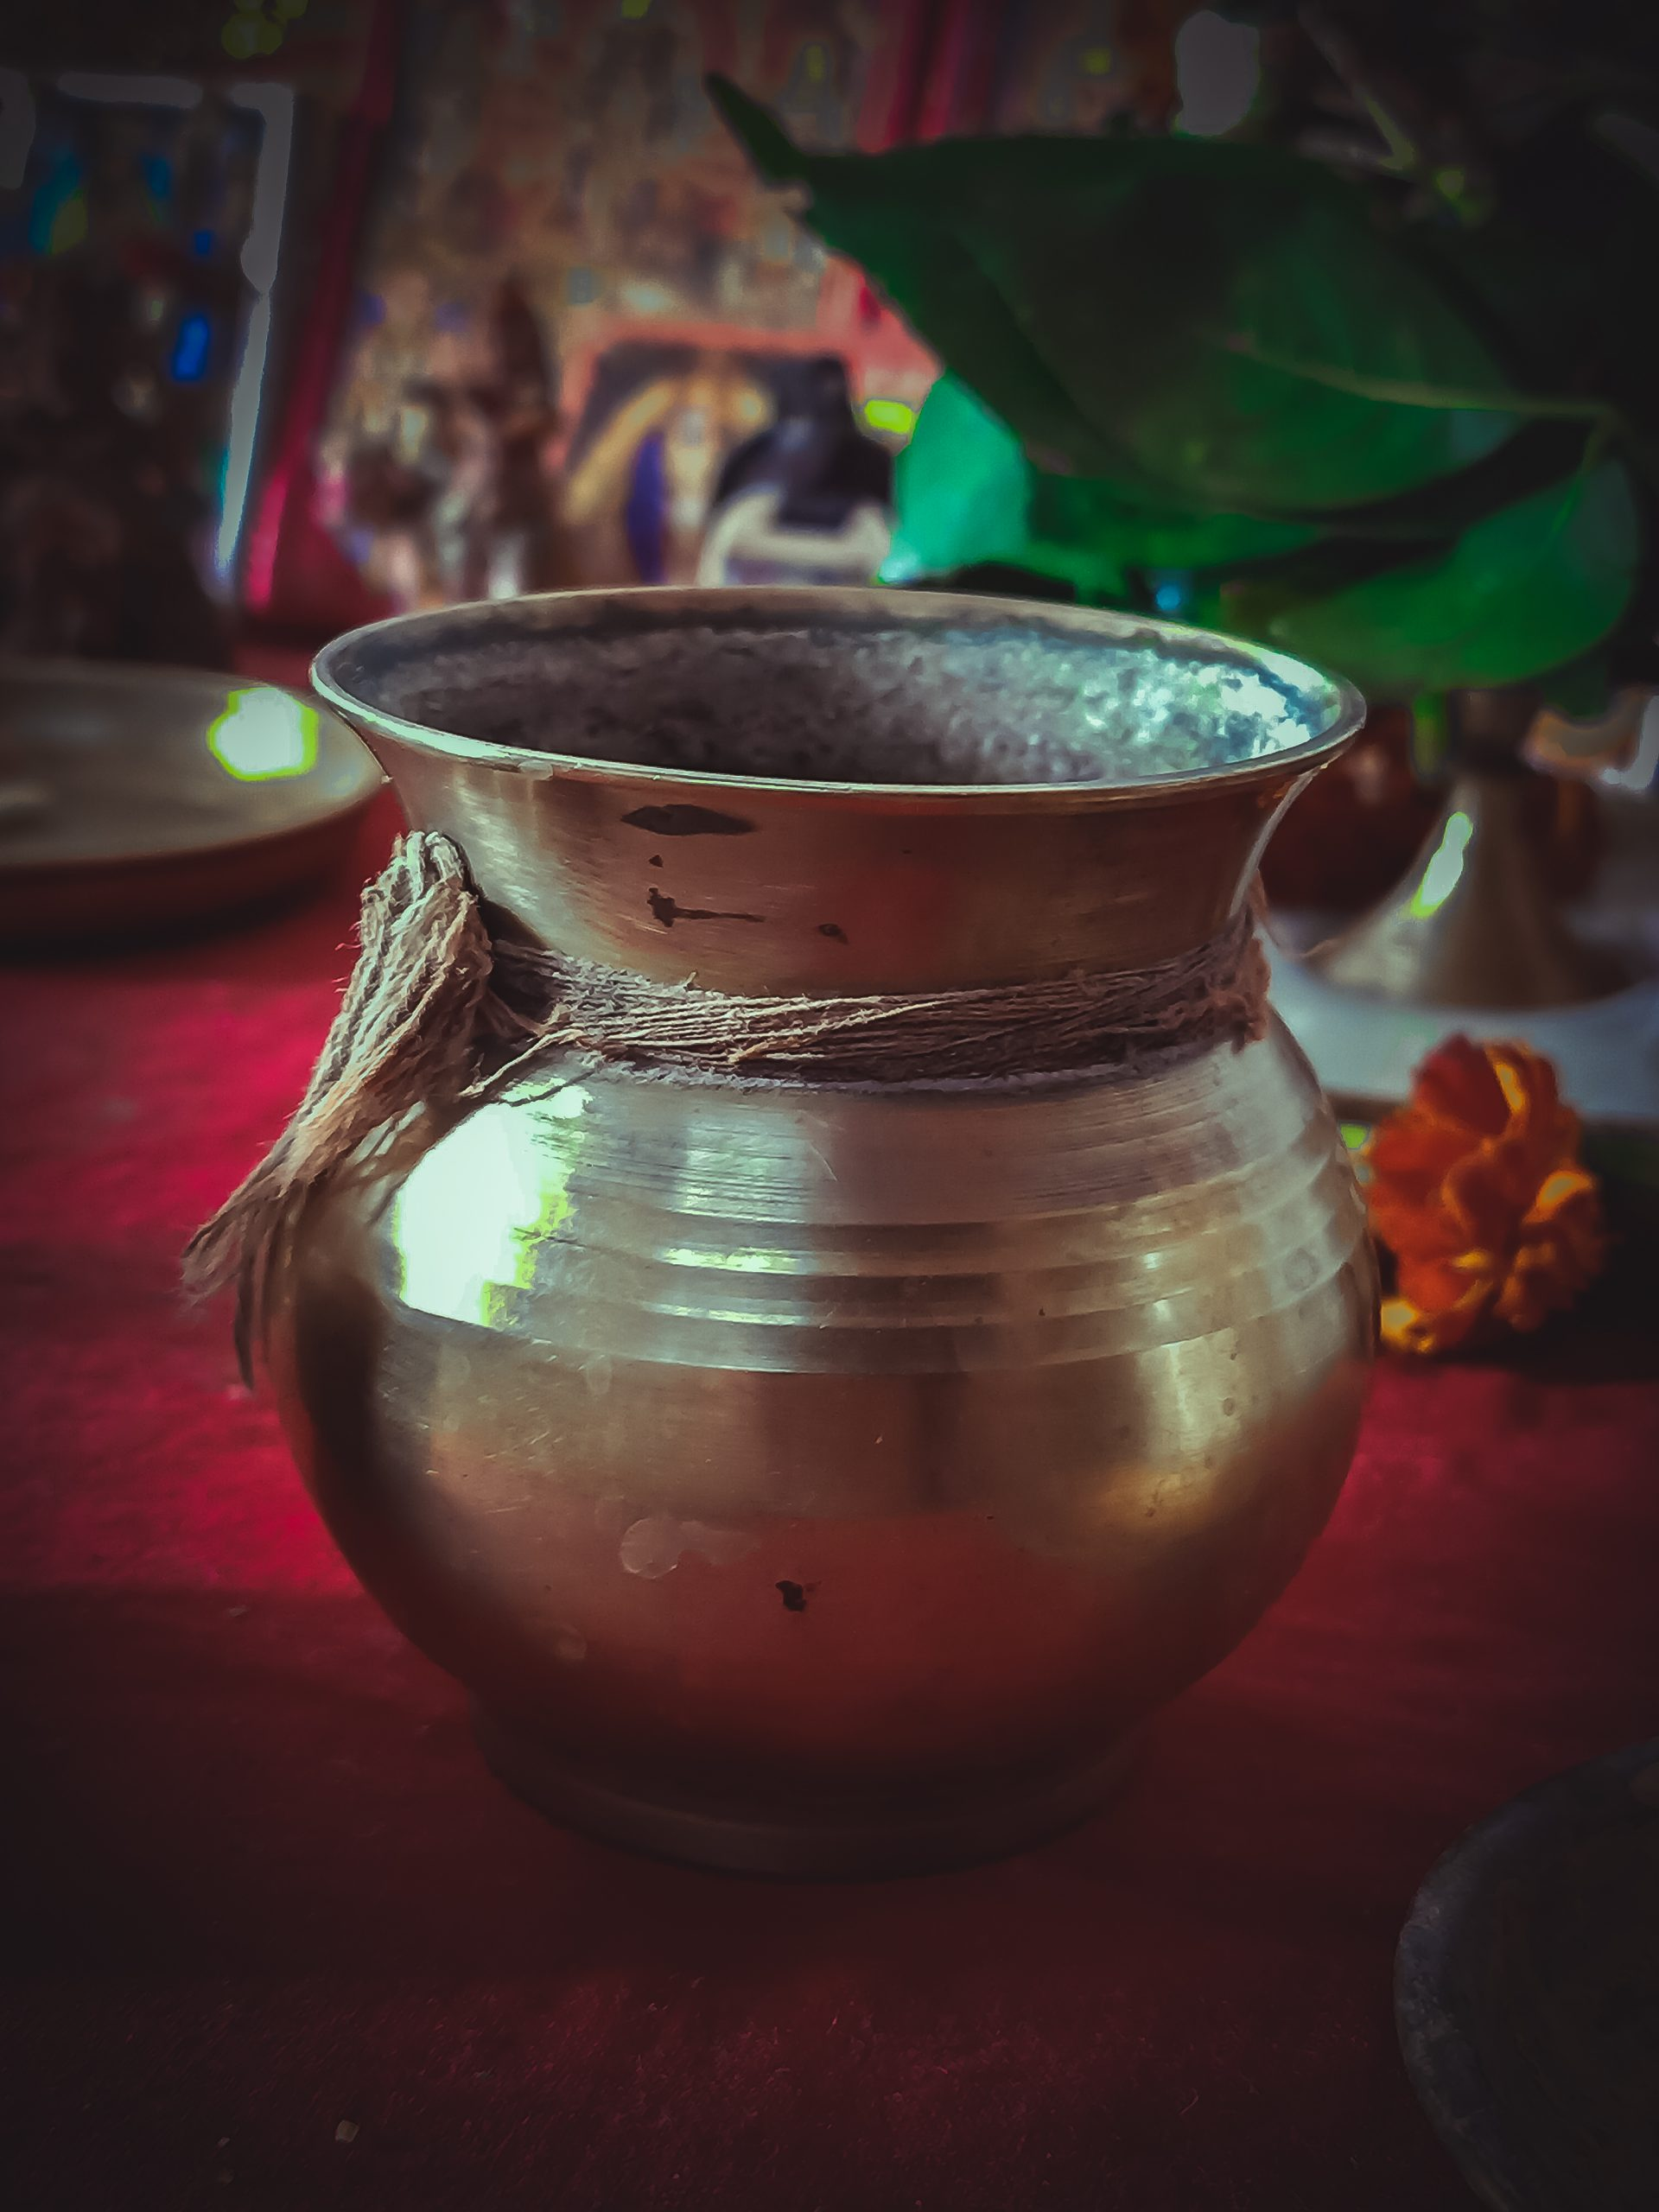 Ewer with a holy water on a religious event